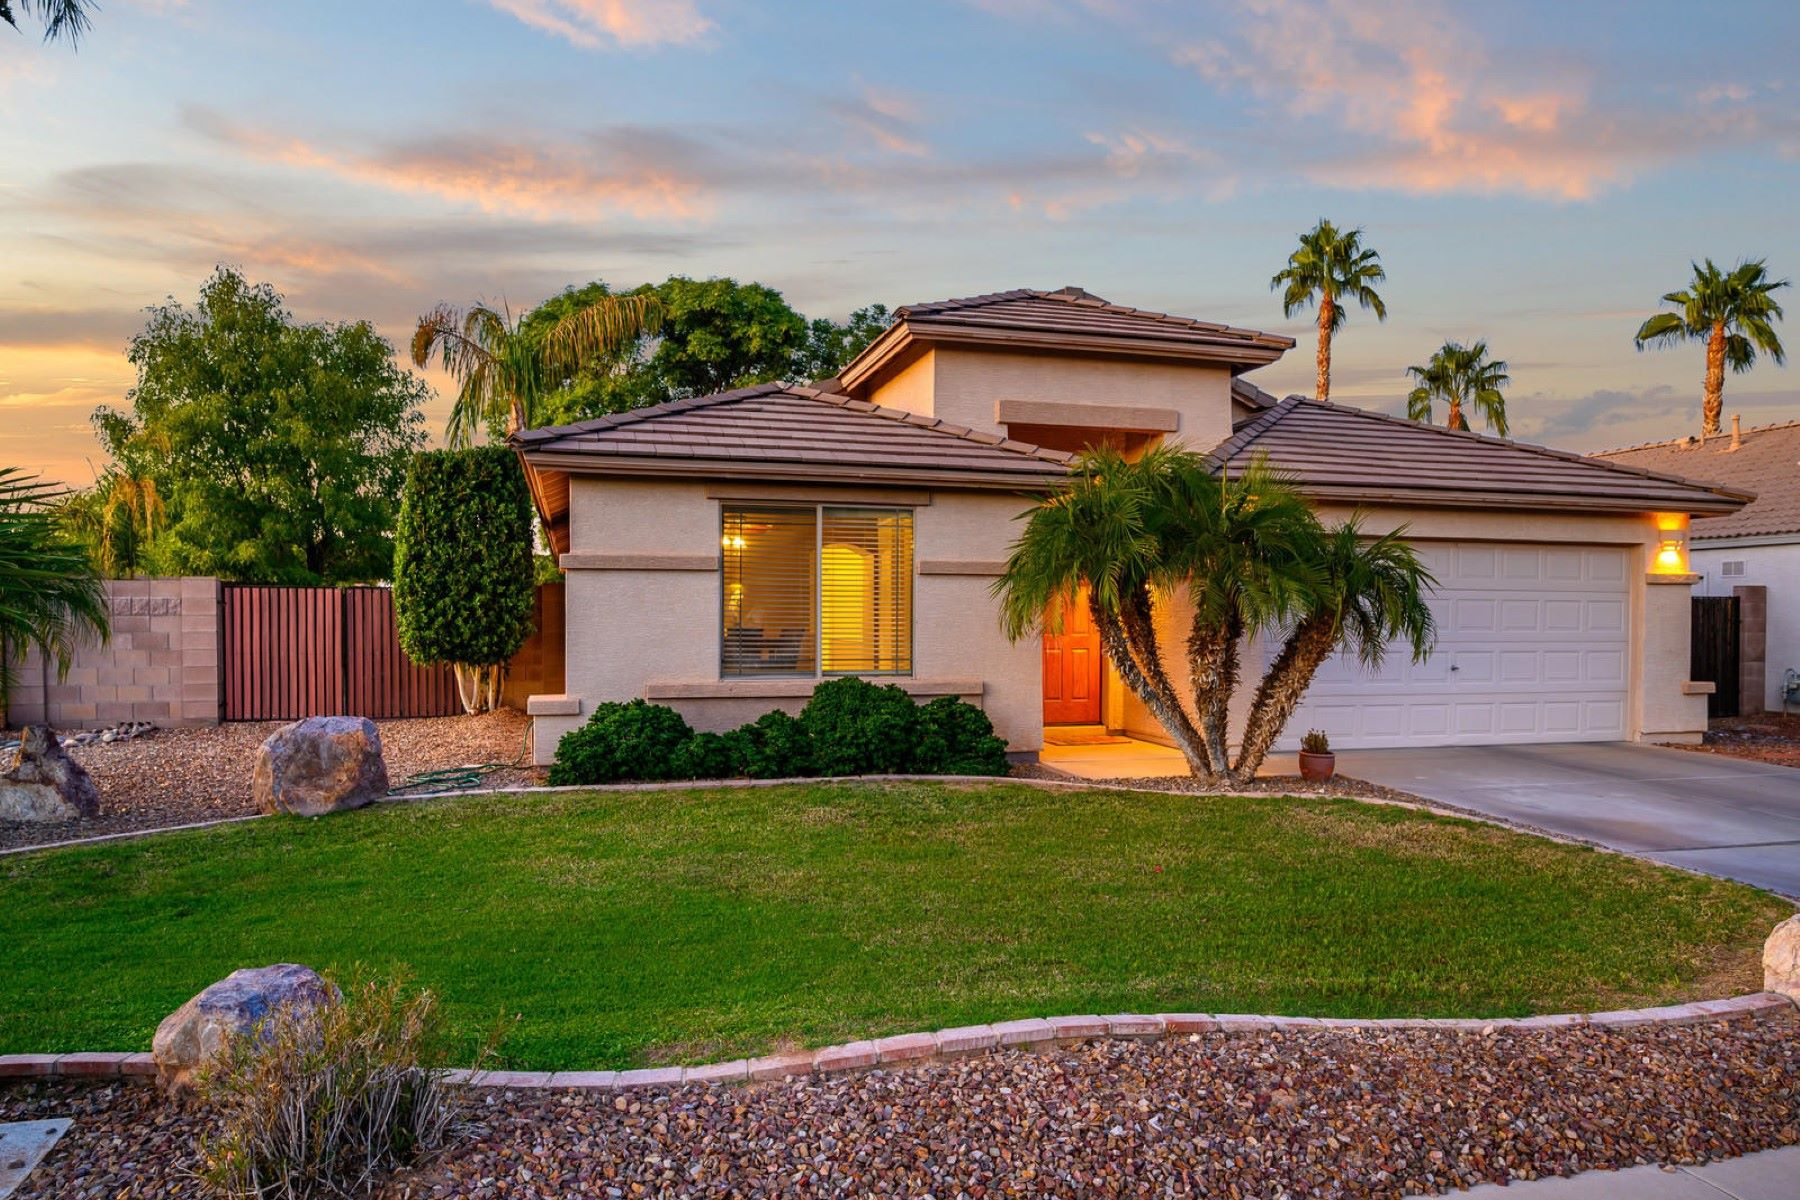 Single Family Homes for Sale at Springfield Lakes 3014 East Winged Foot Drive Chandler, Arizona 85249 United States